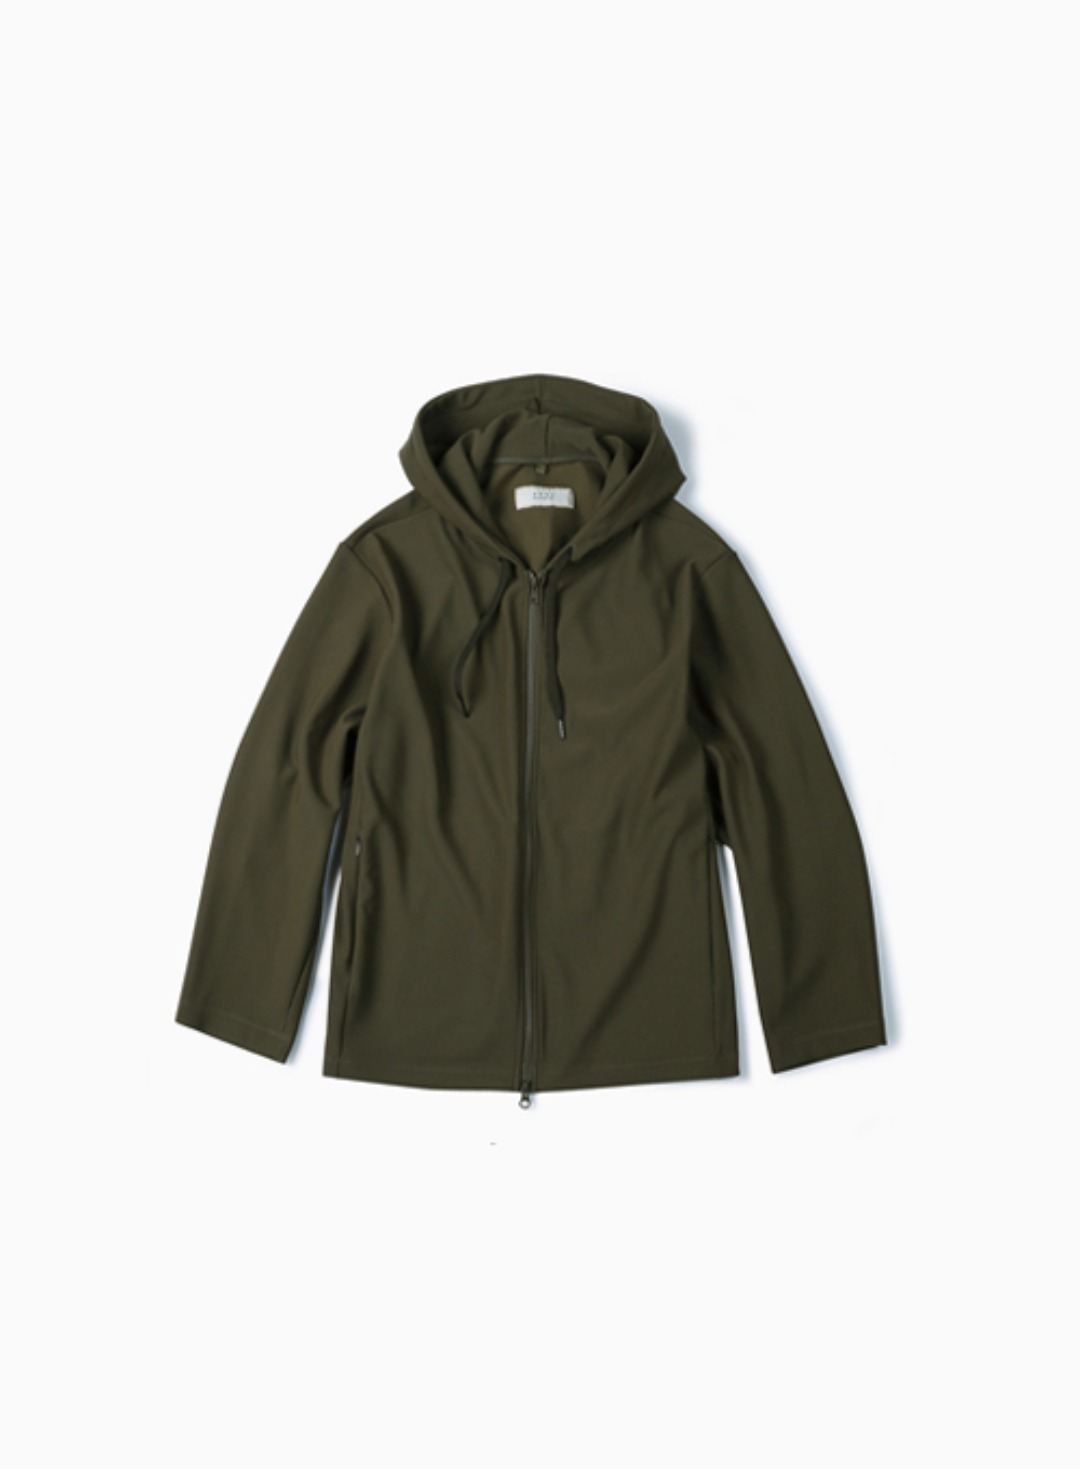 RIB JERSEY HOODIE (OLIVE)